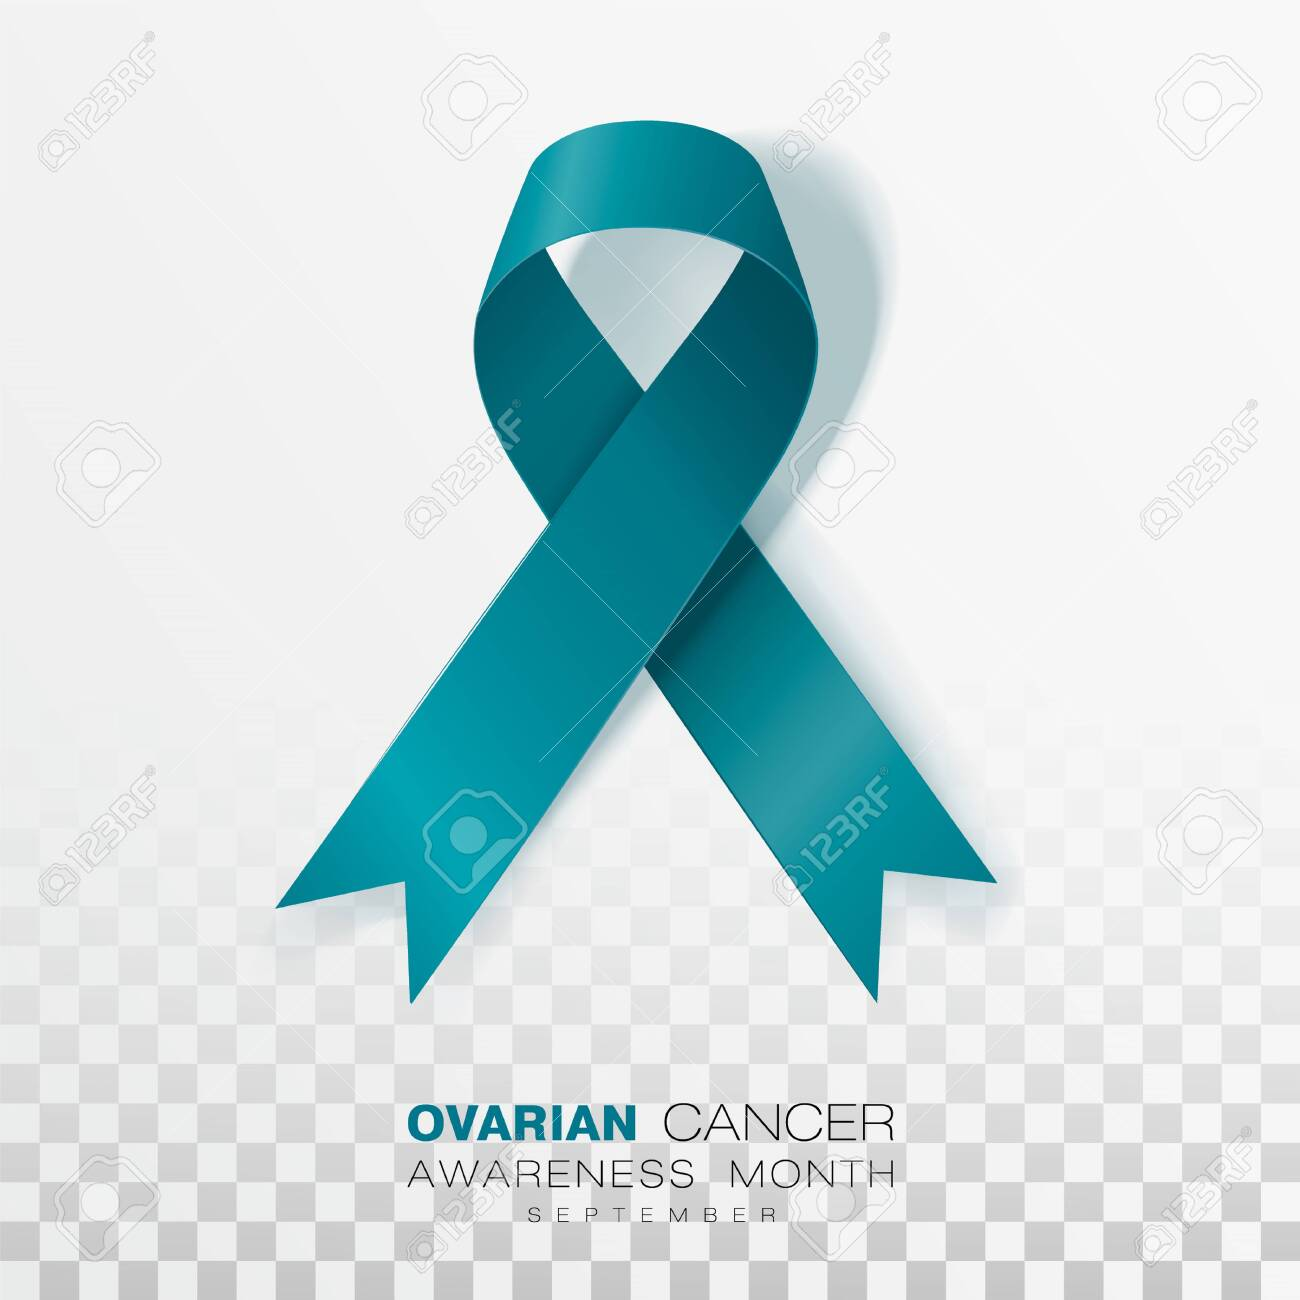 Ovarian Cancer Awareness Month Teal Color Ribbon Isolated On Royalty Free Cliparts Vectors And Stock Illustration Image 125972137